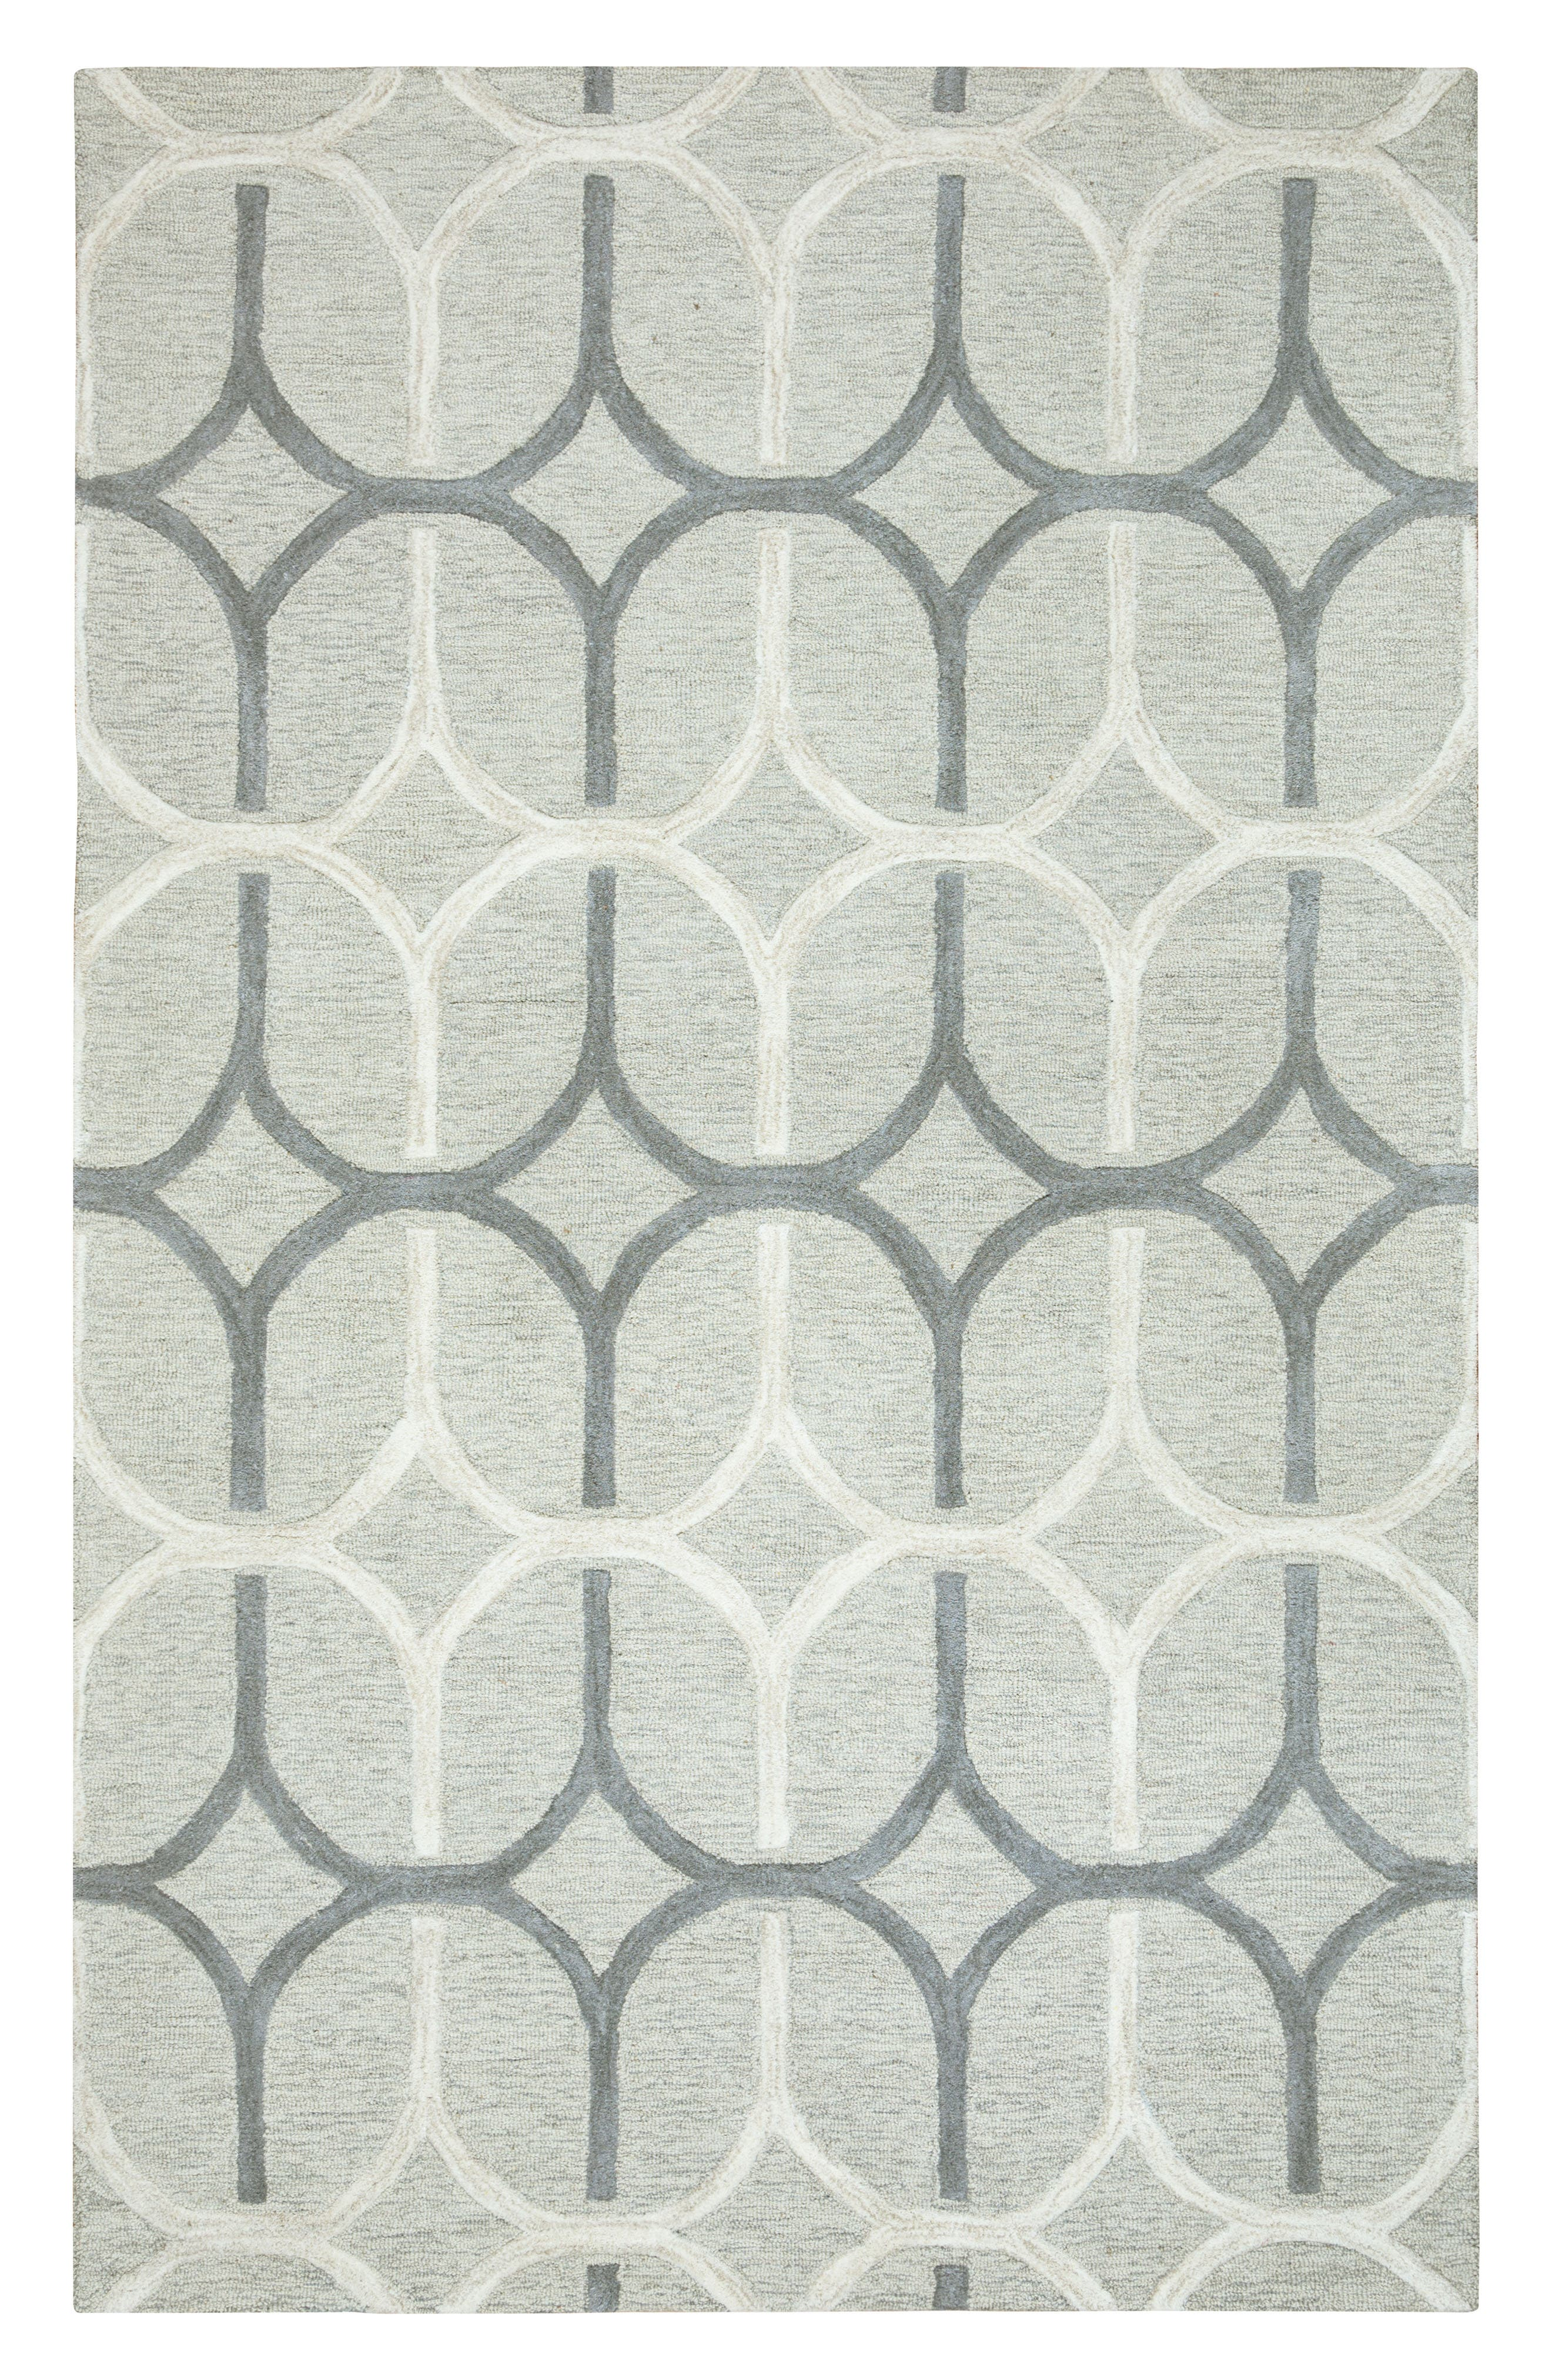 'Caterine Ovals' Hand Tufted Wool Area Rug,                         Main,                         color, 020